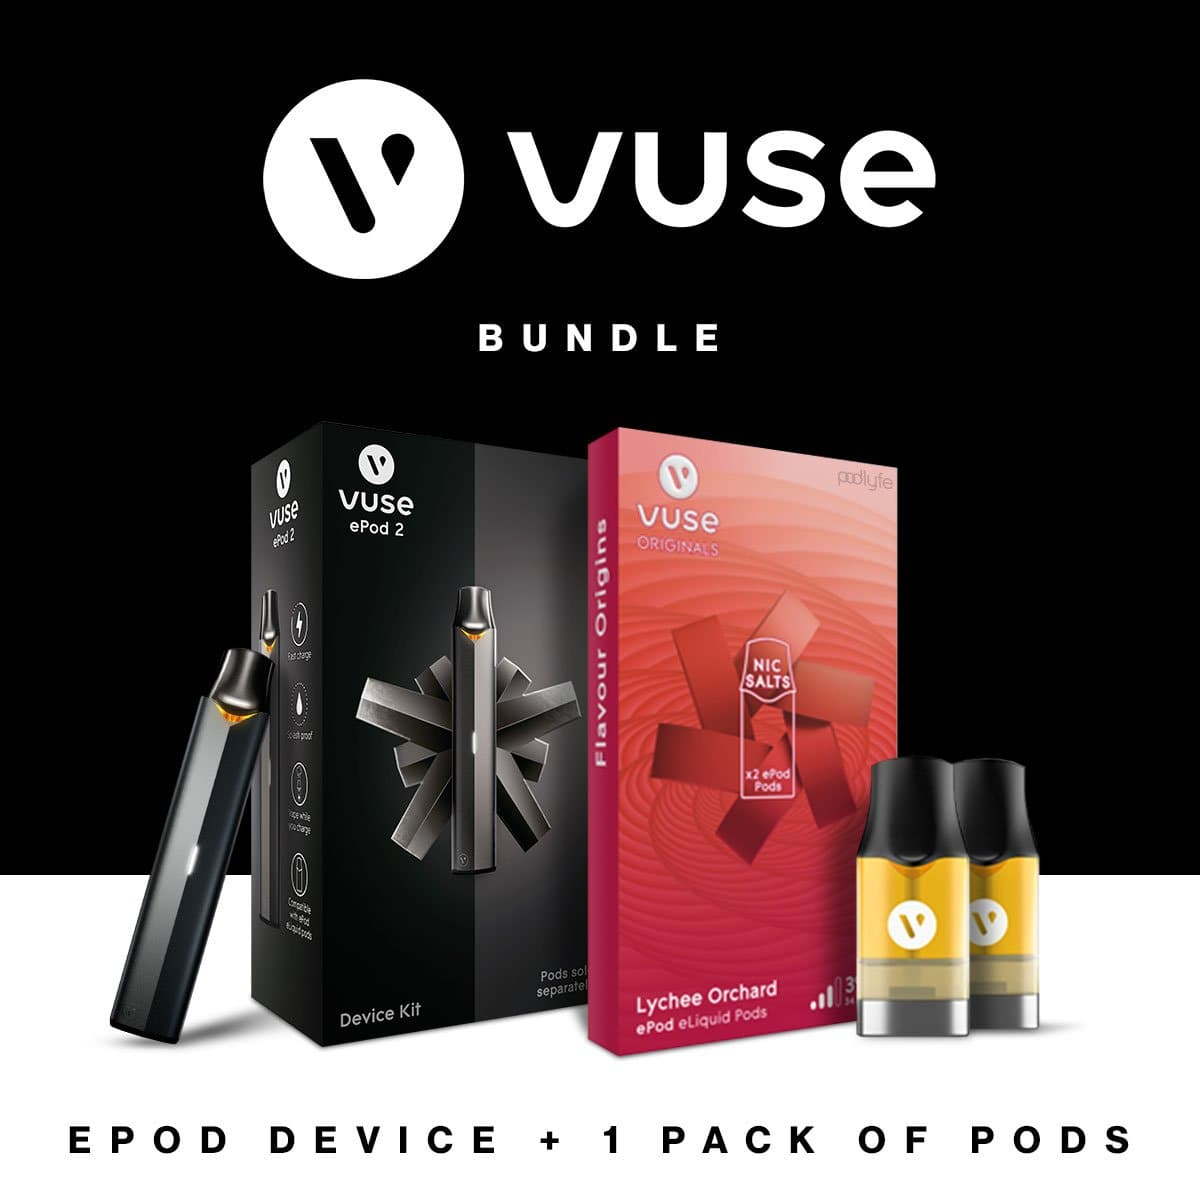 VUSE ePod 2 Bundle